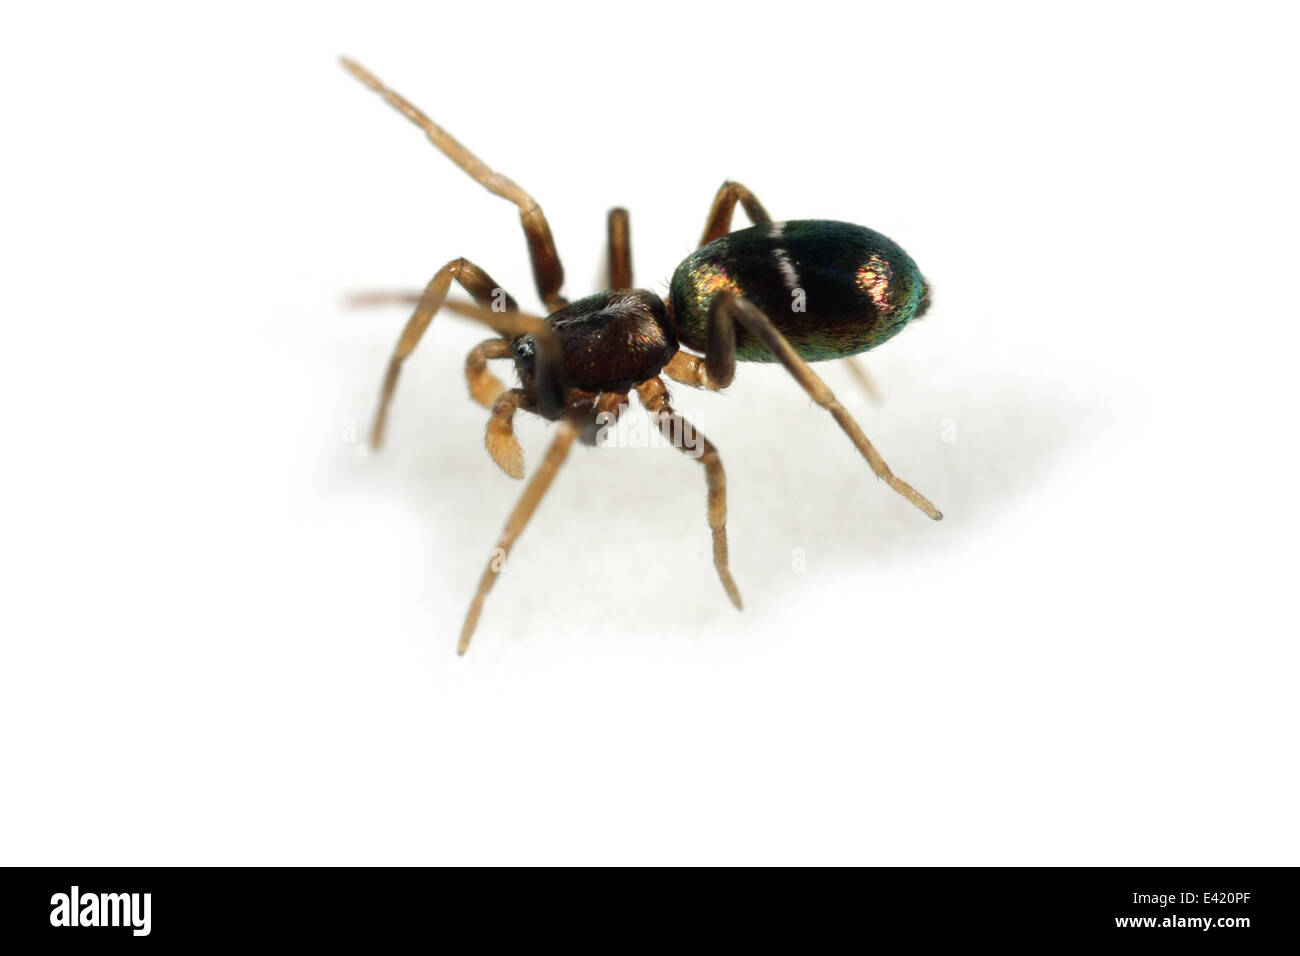 Juvenile male Pine-tree ant-spider (Micaria subopaca), part of the family Gnaphosidae - Stealthy ground spiders. Stock Photo